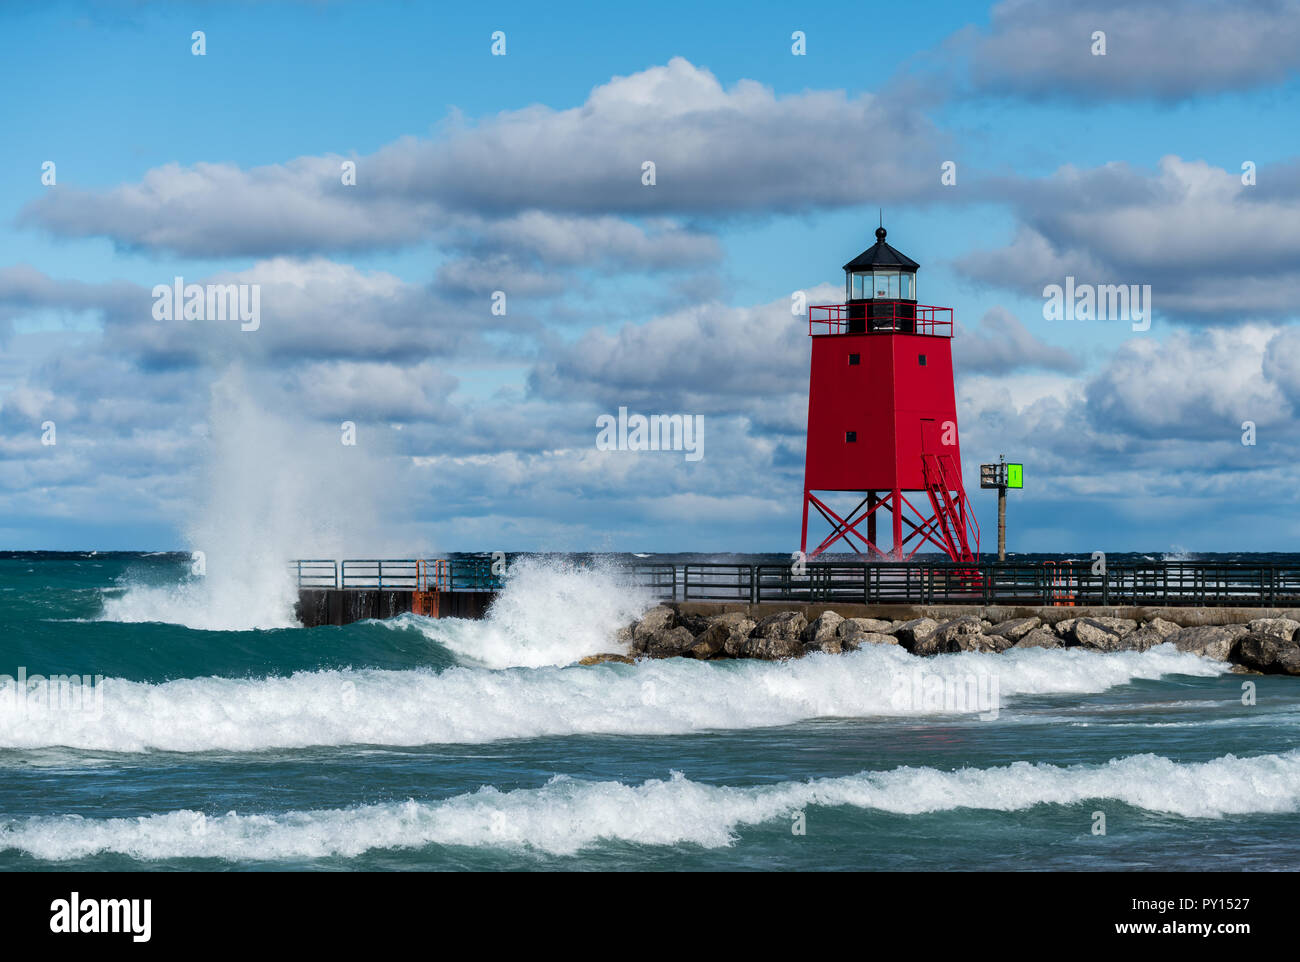 Charlevoix South Pier lighthouse in Charlevoix, Michigan, USA. - Stock Image